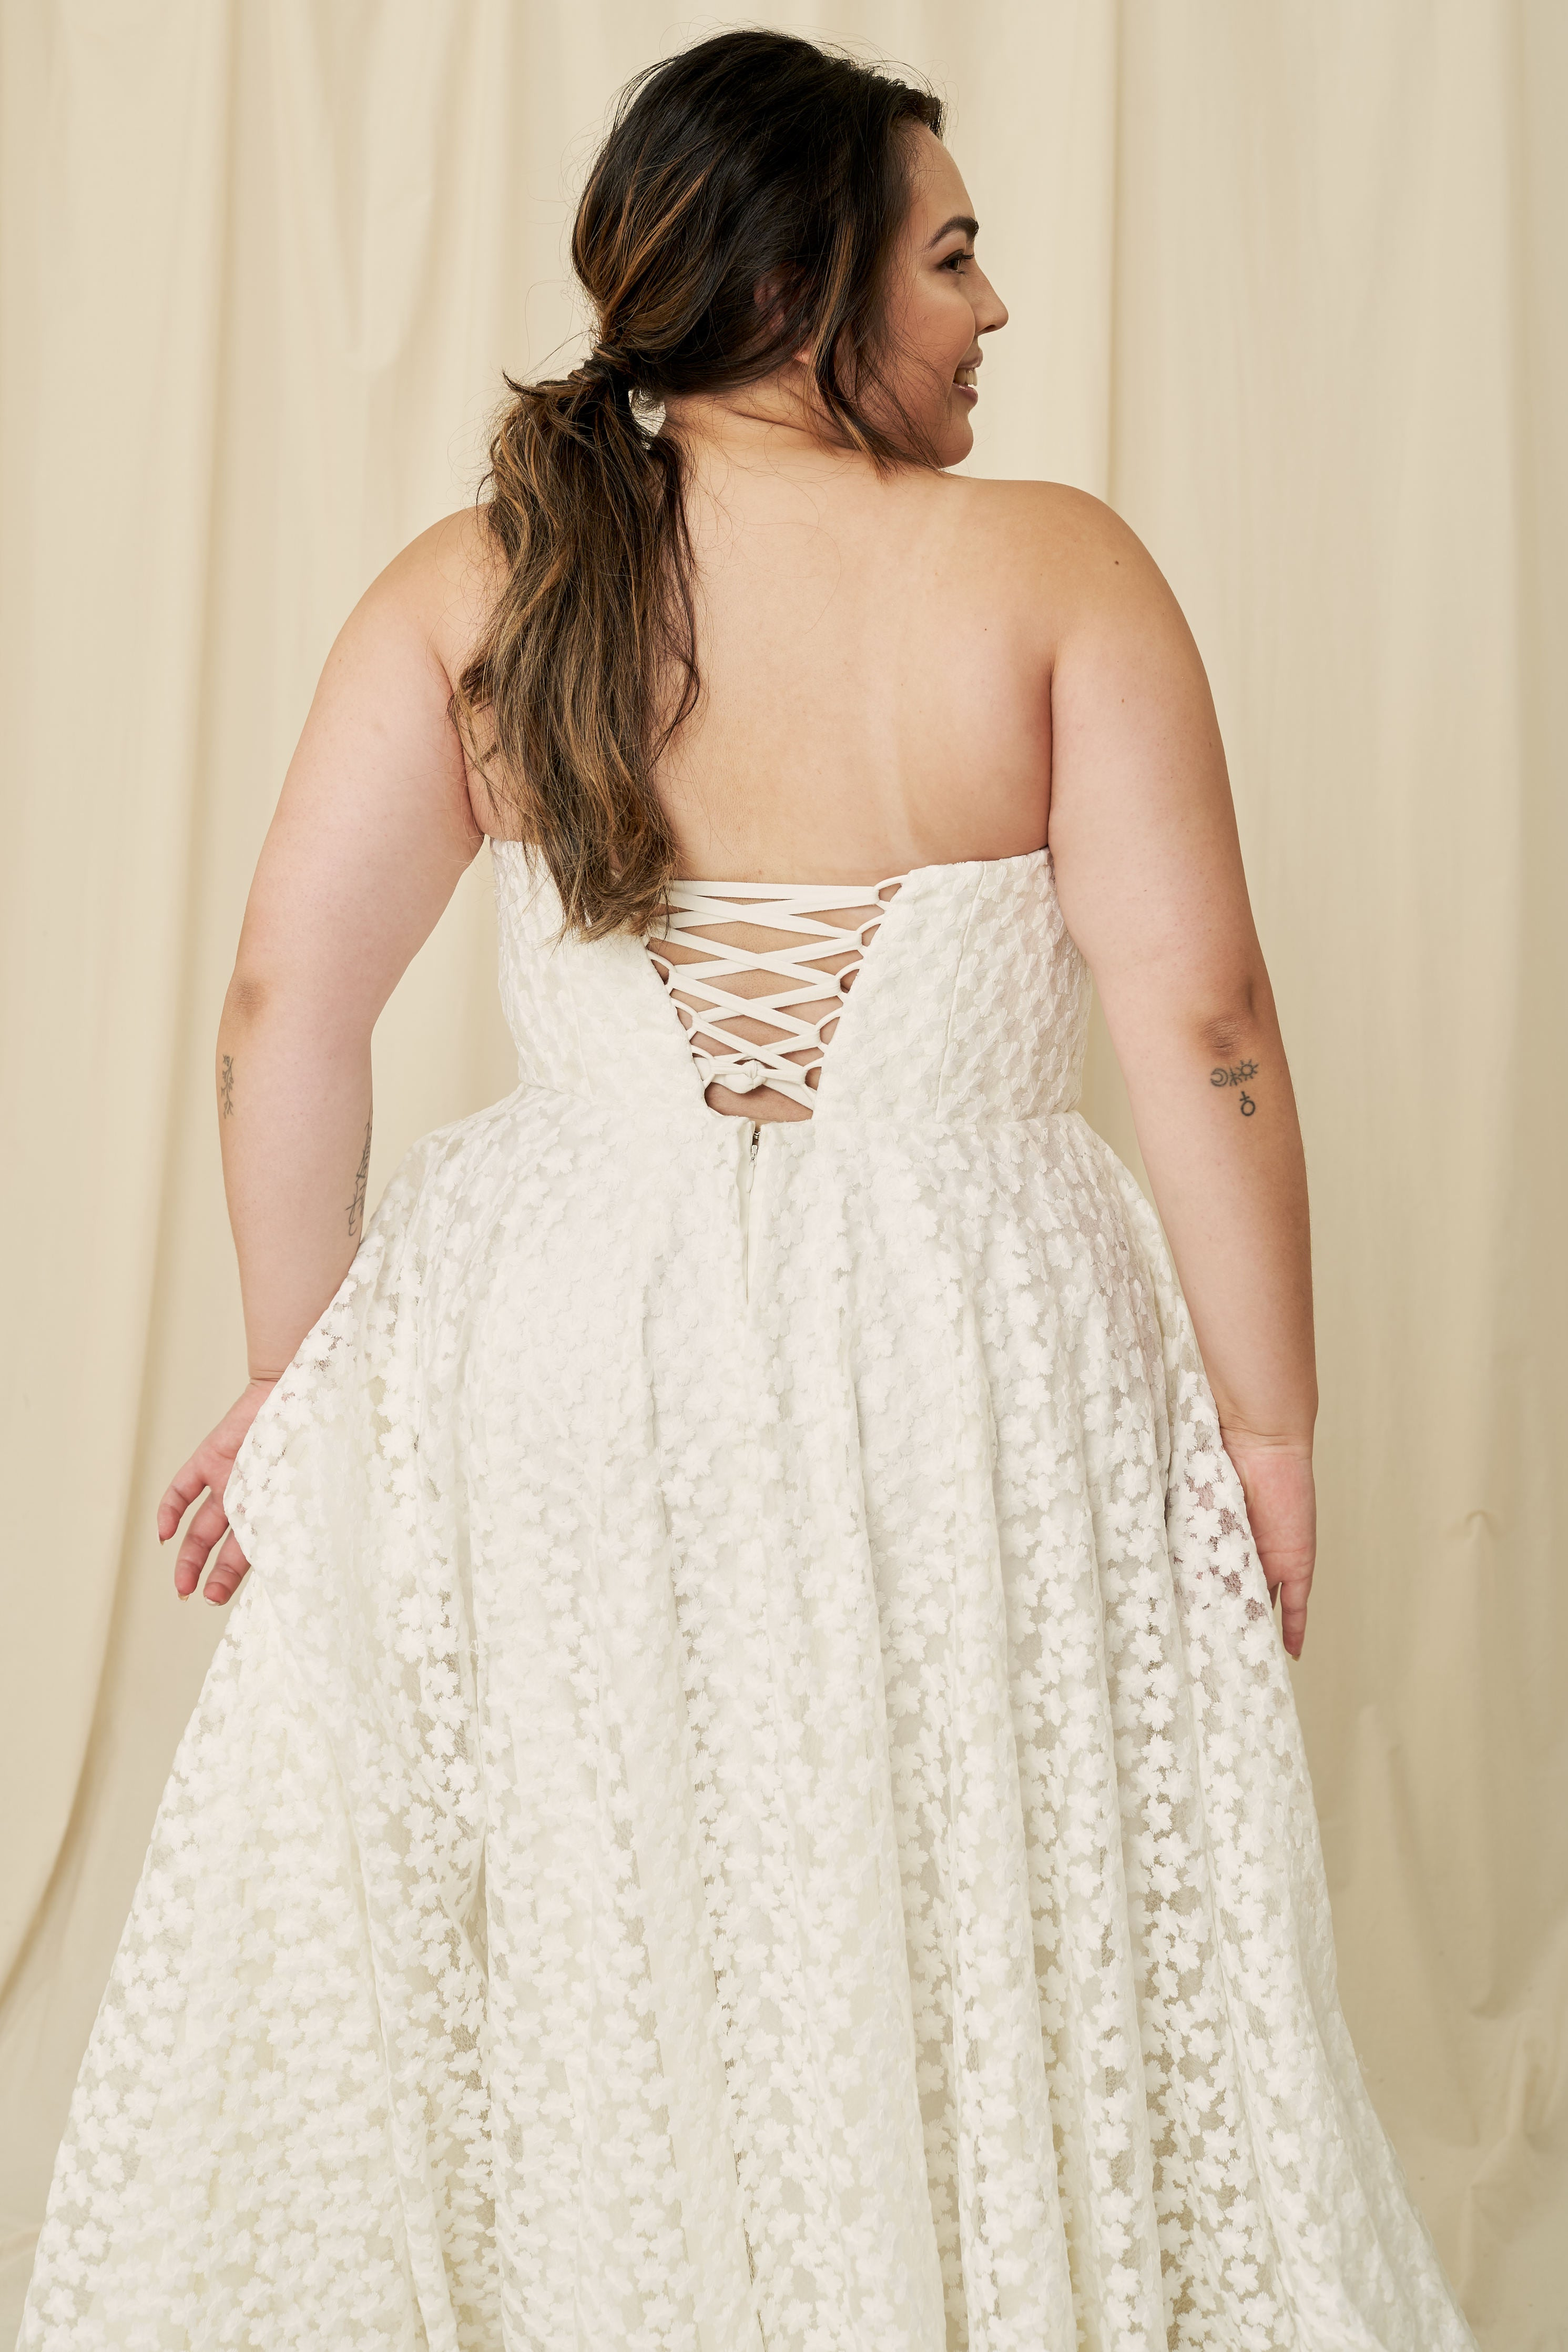 Affordable curvy wedding dresses boutique in Vancouver, Calgary